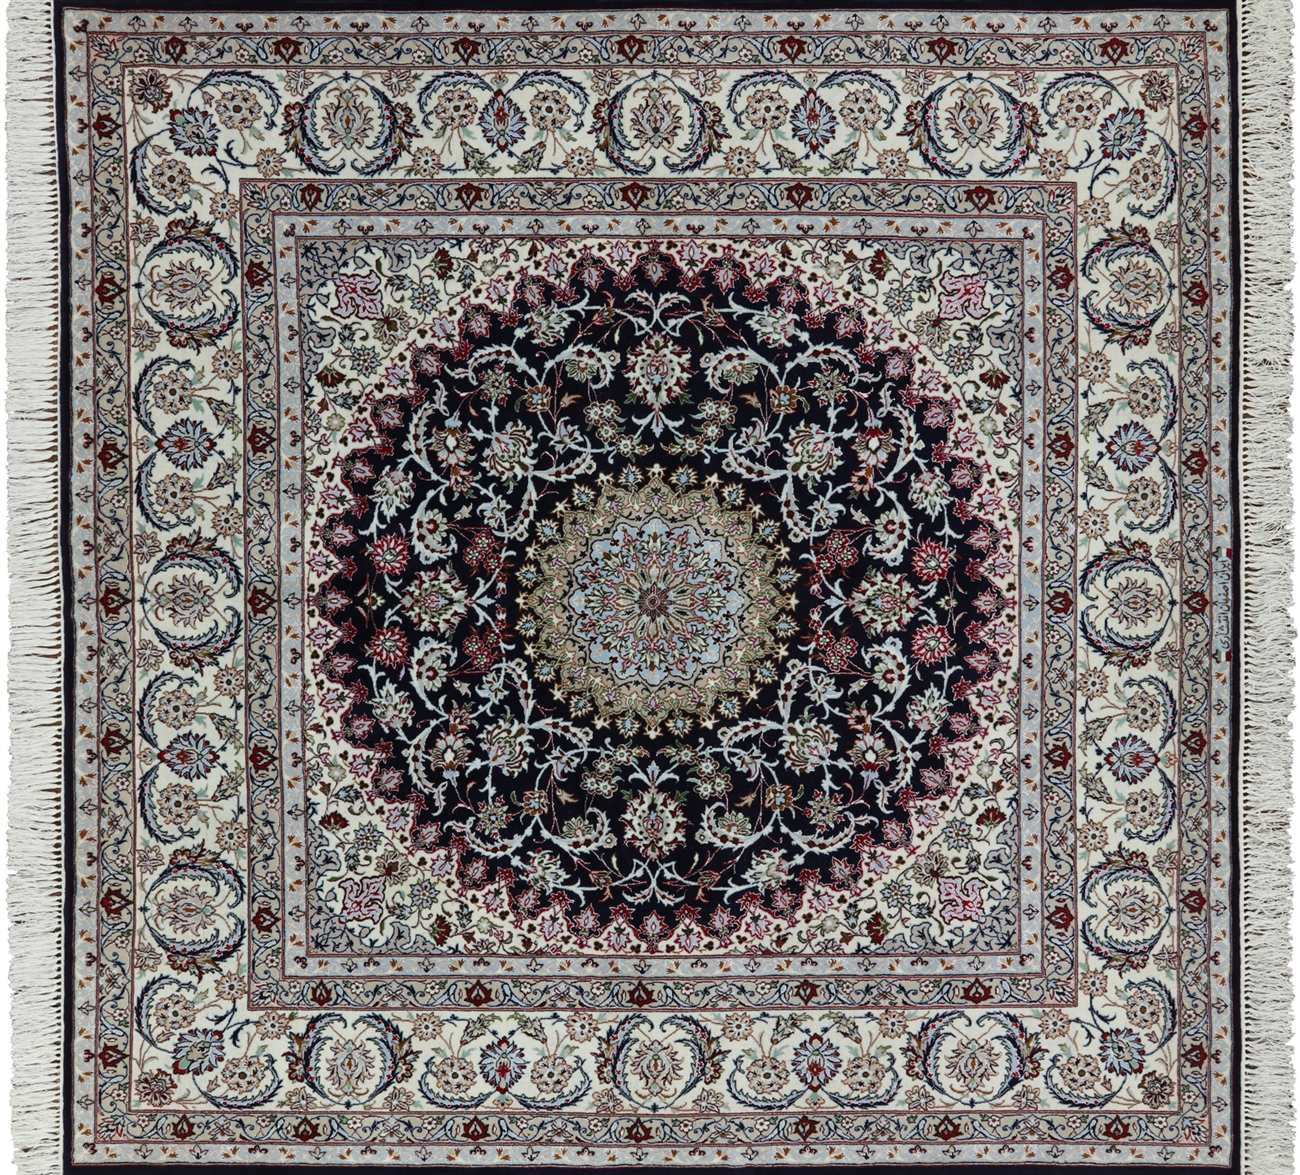 7 Square Signed Persian Hand Knotted Wool Silk Isfahan Rug